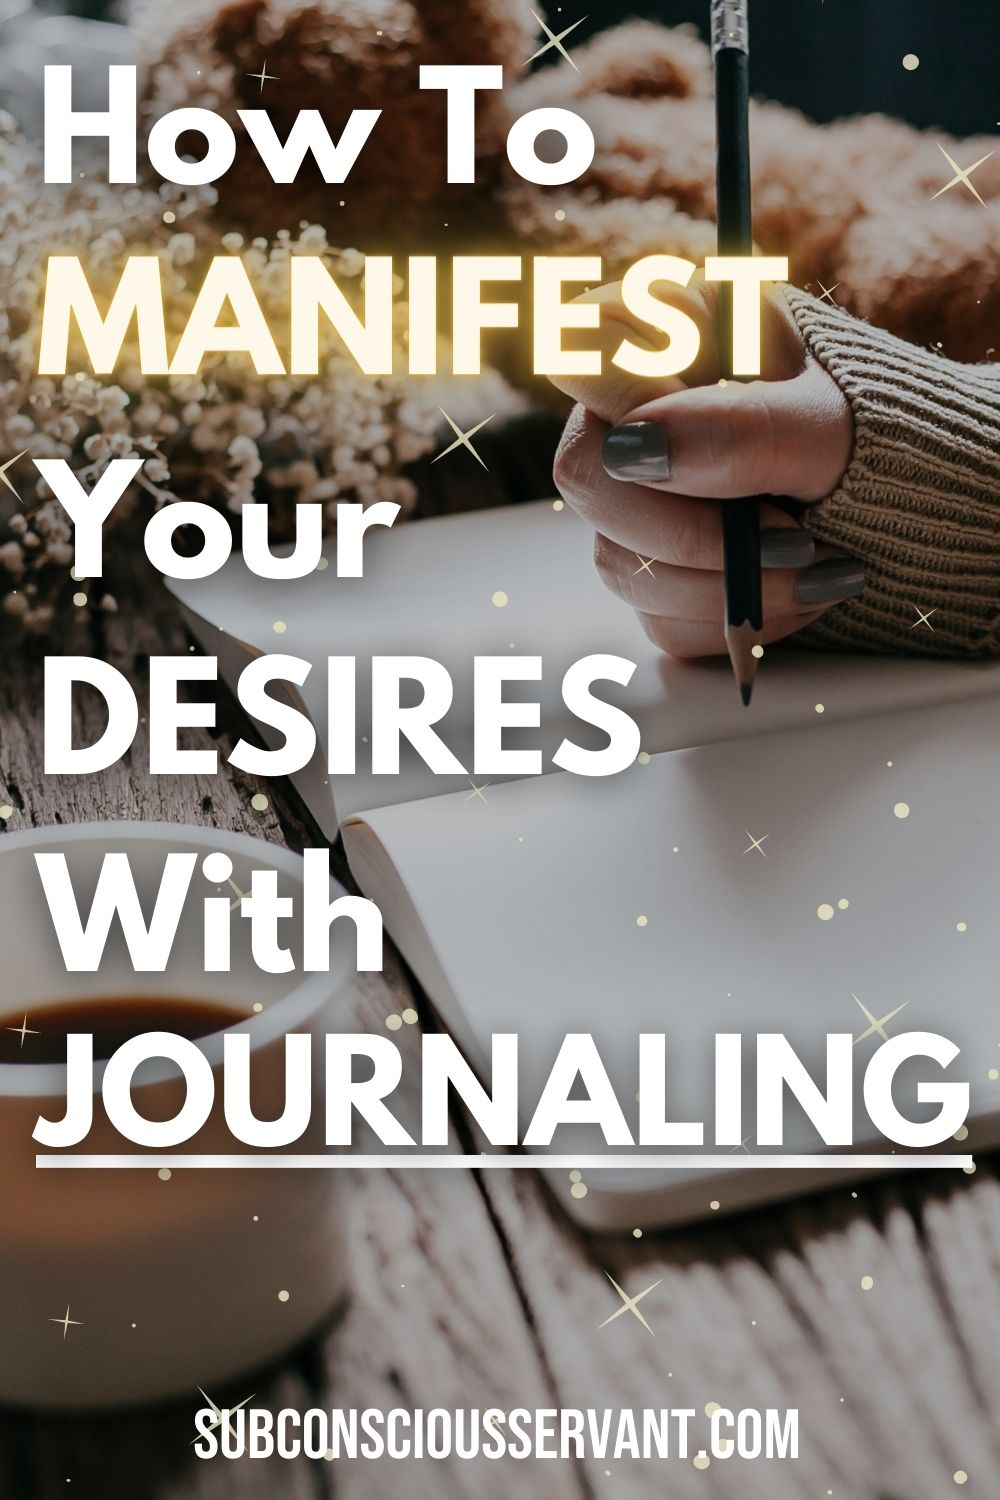 Journaling For Manifestation [Step-By-Step Guide]